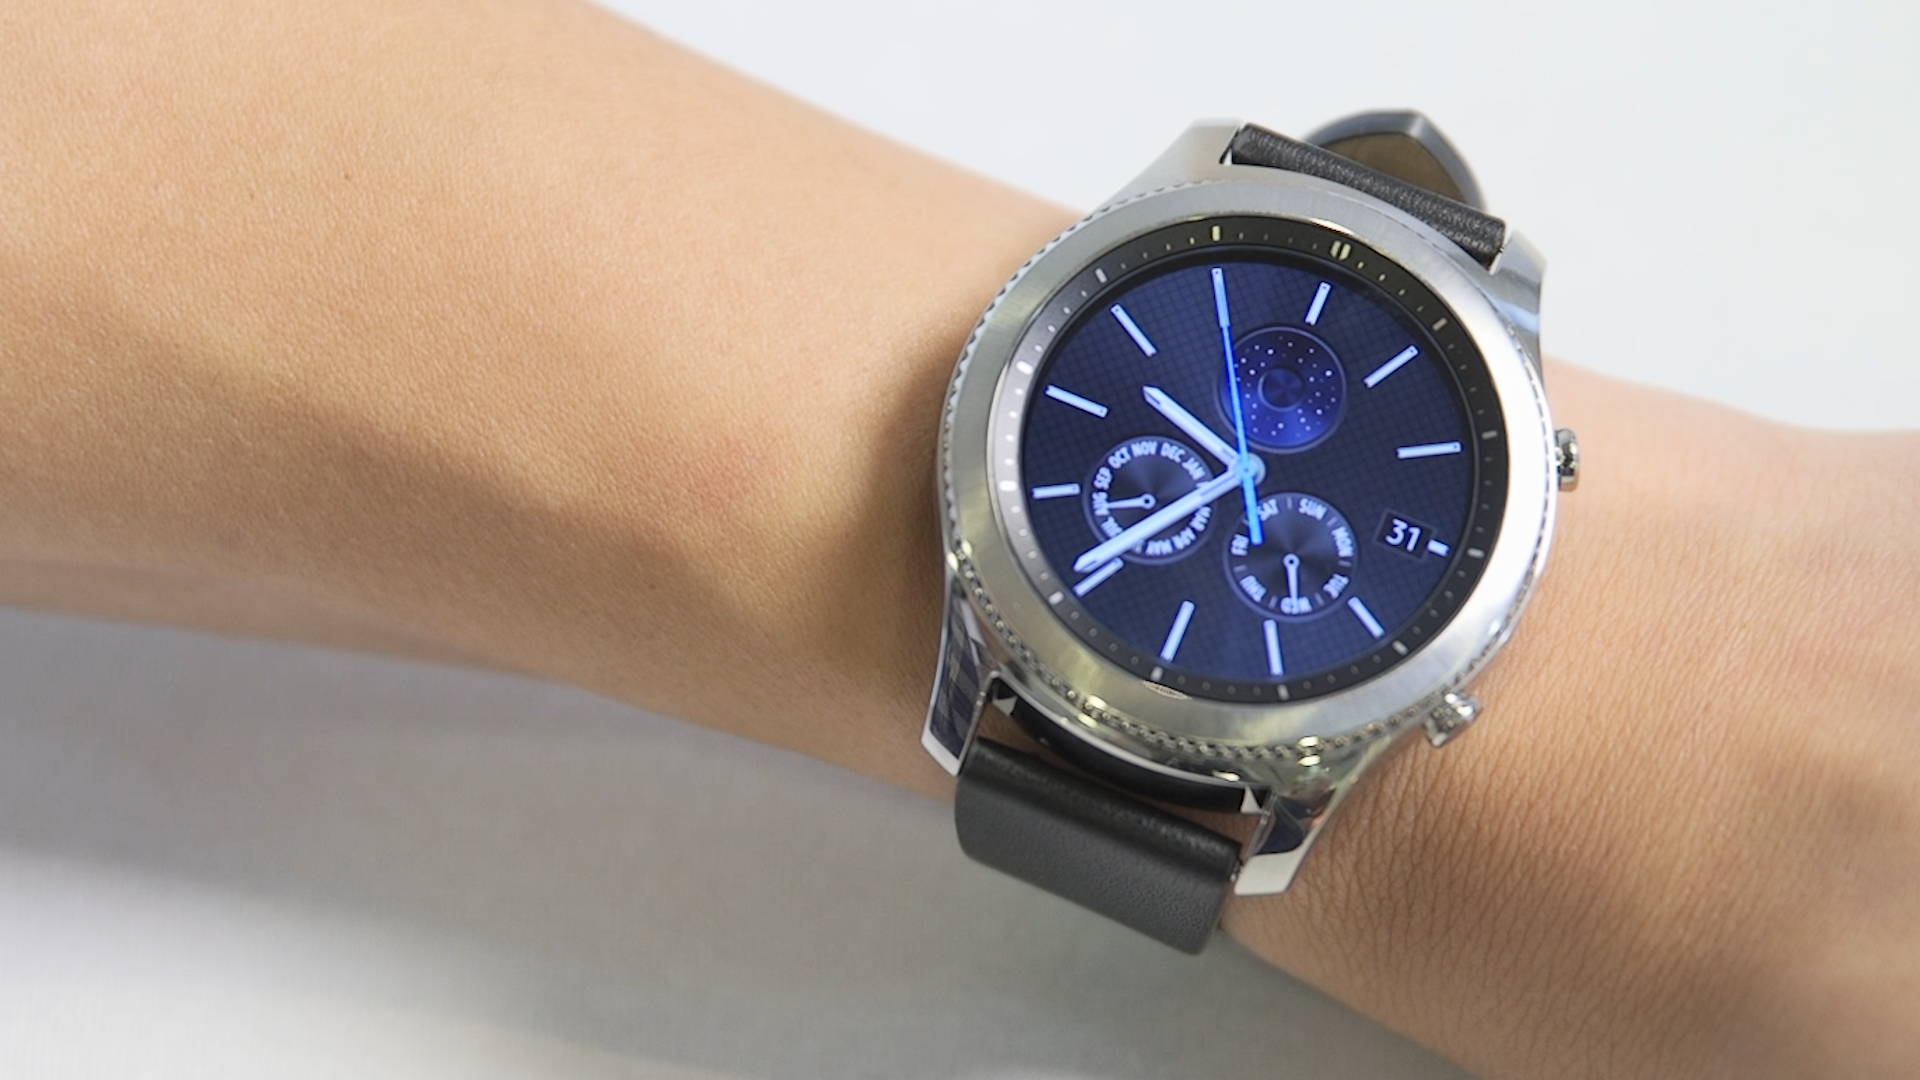 Gear S3 Gets Three New Big Name Fitness Apps Trusted Reviews Samsung Classic Silver